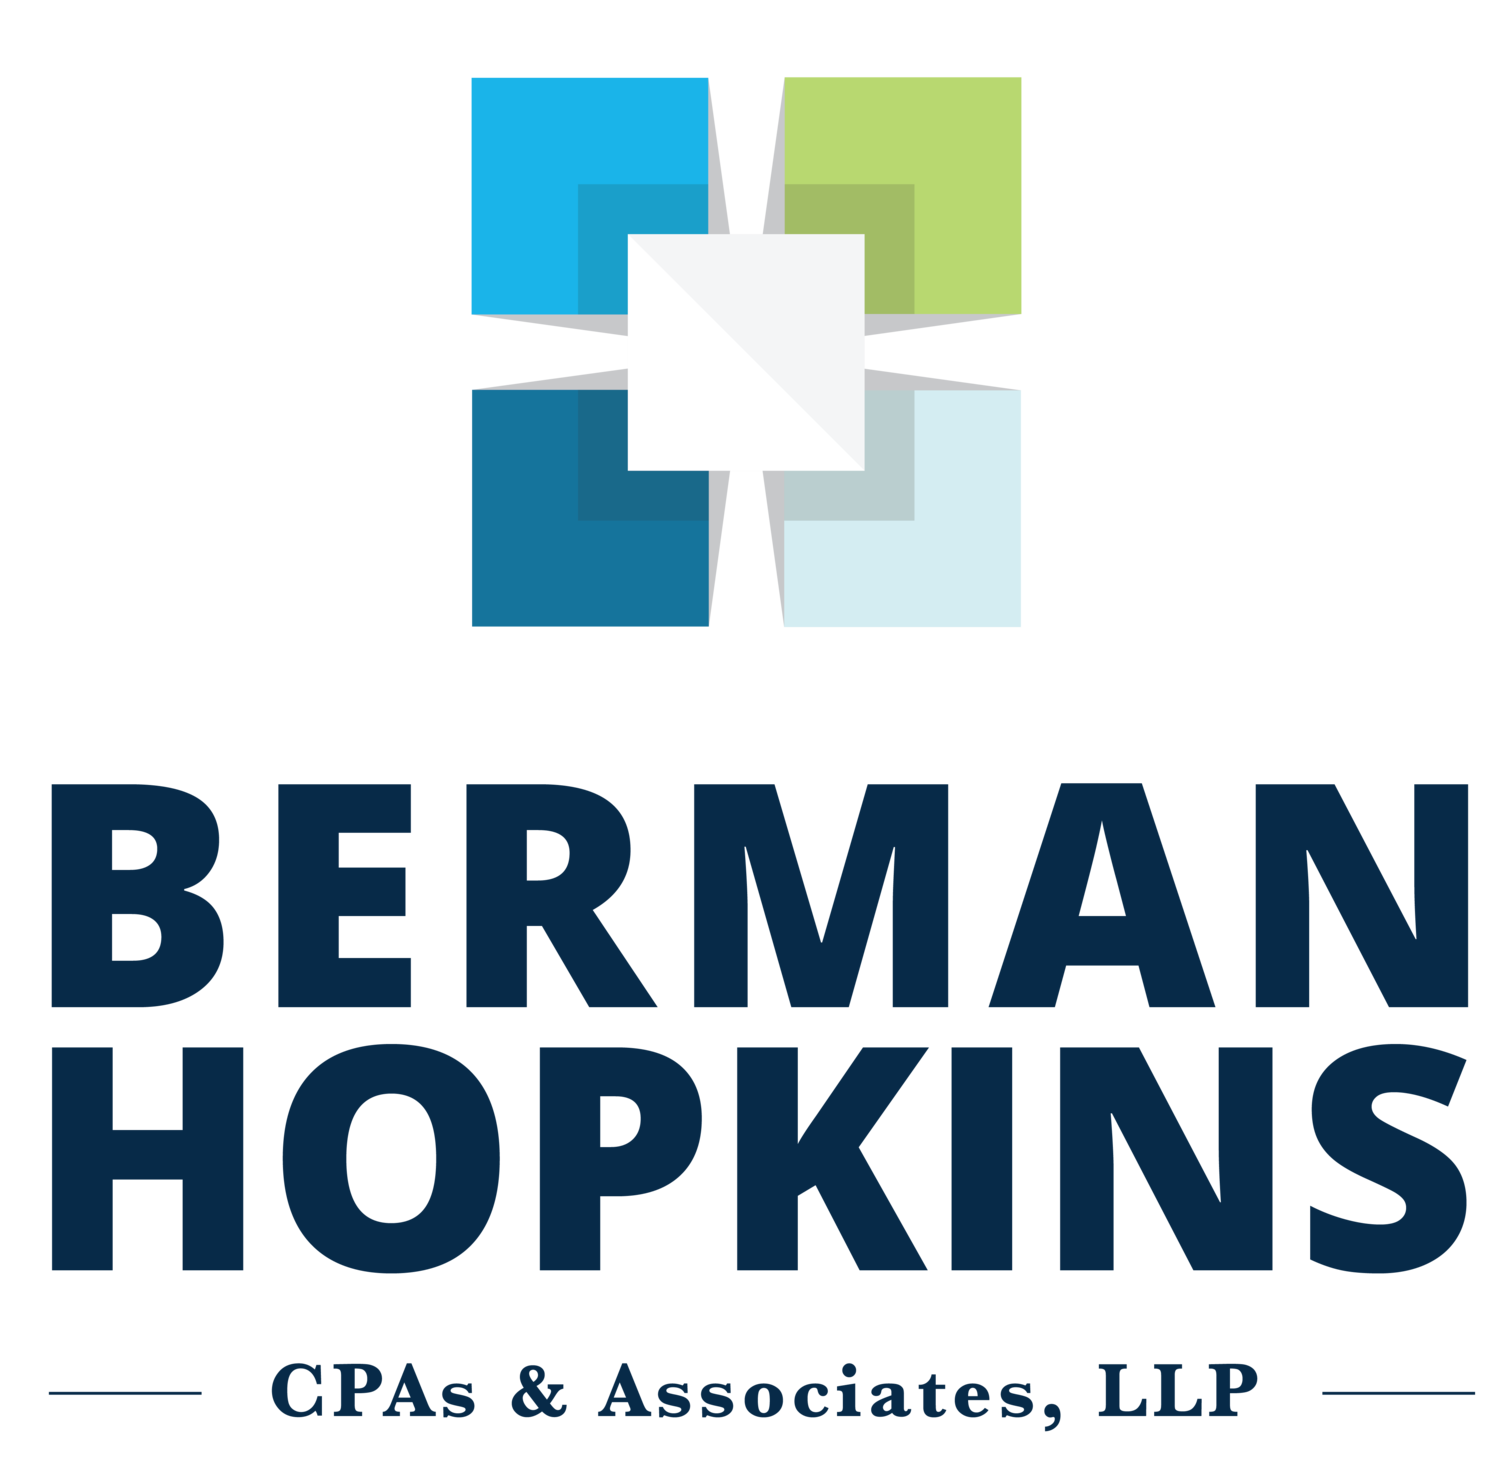 Berman Hopkins